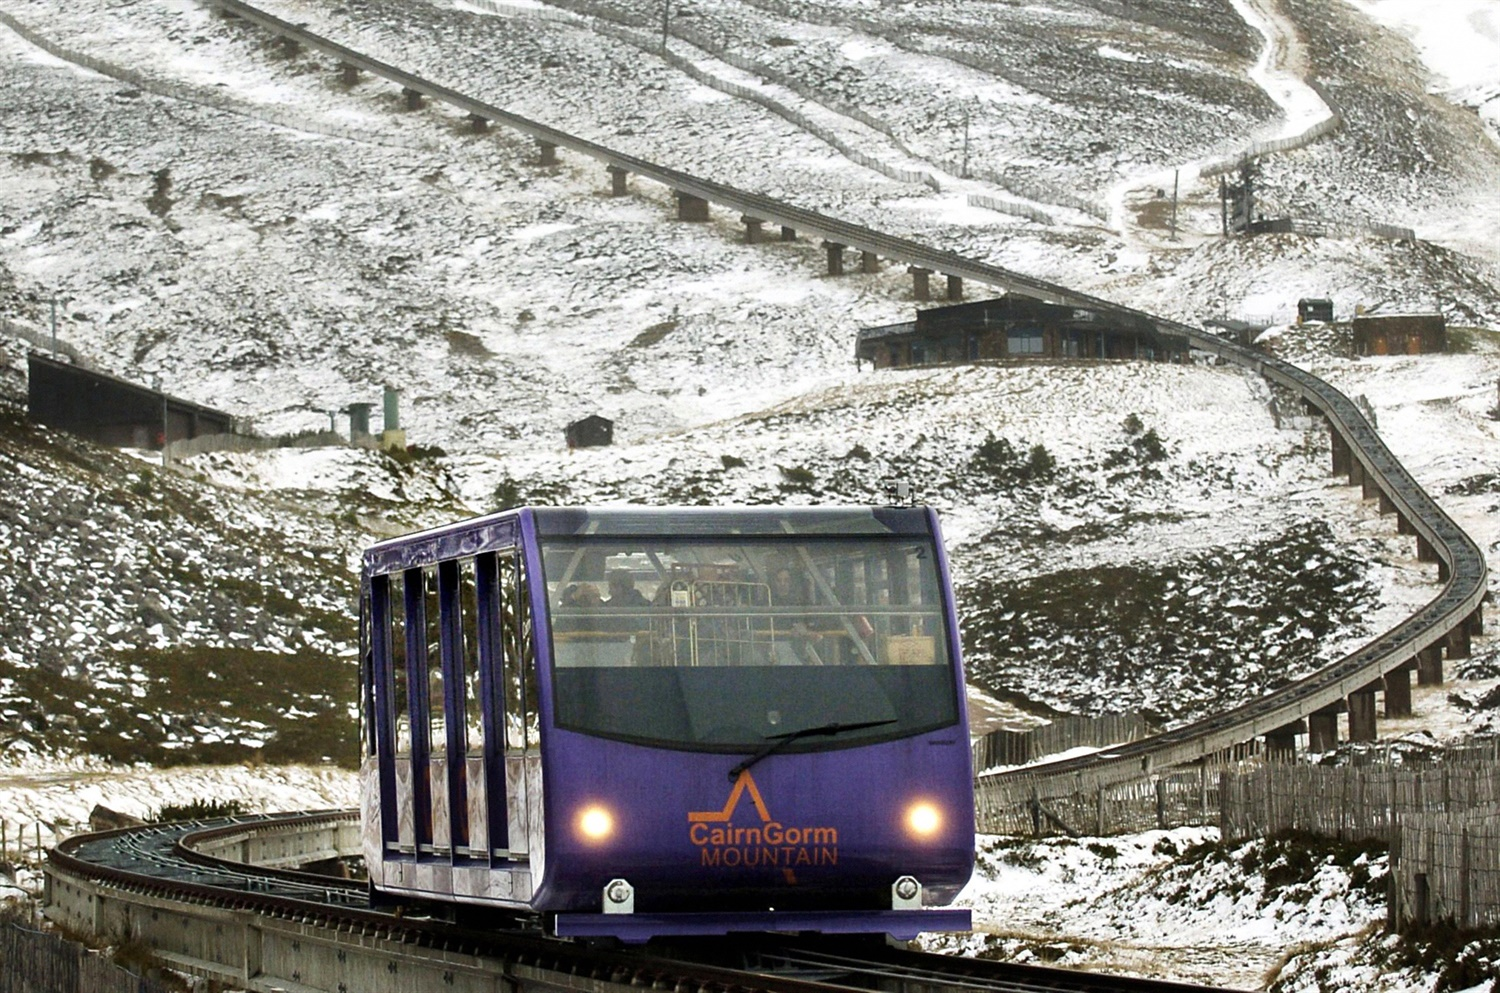 Cairngorm funicular report into UK's highest railway delayed again